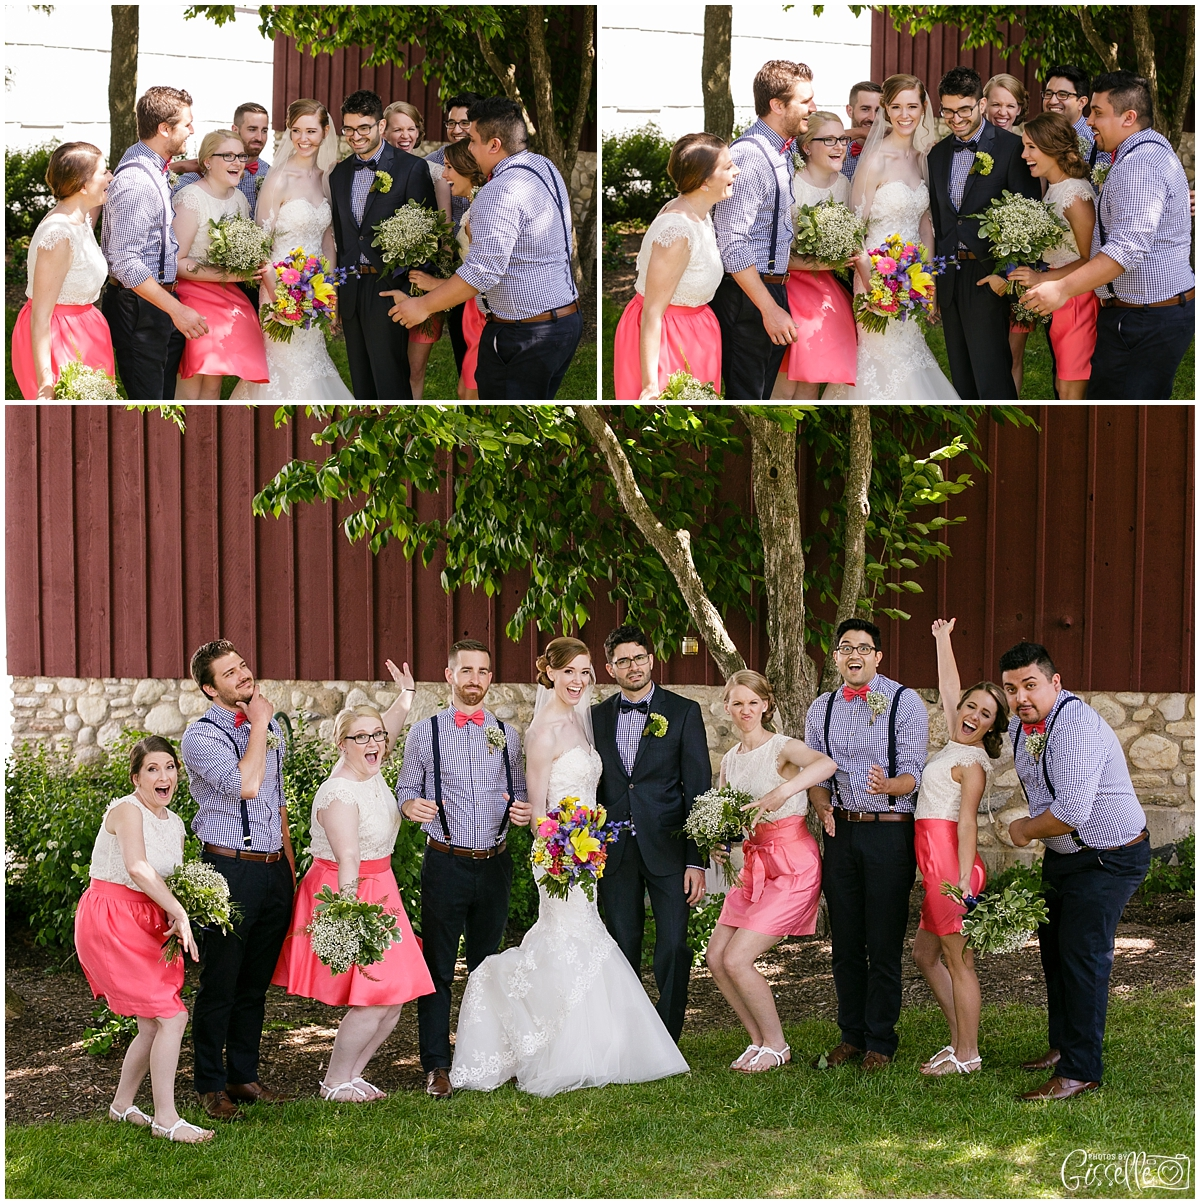 Elgin_Streamwood_Wedding31.jpg